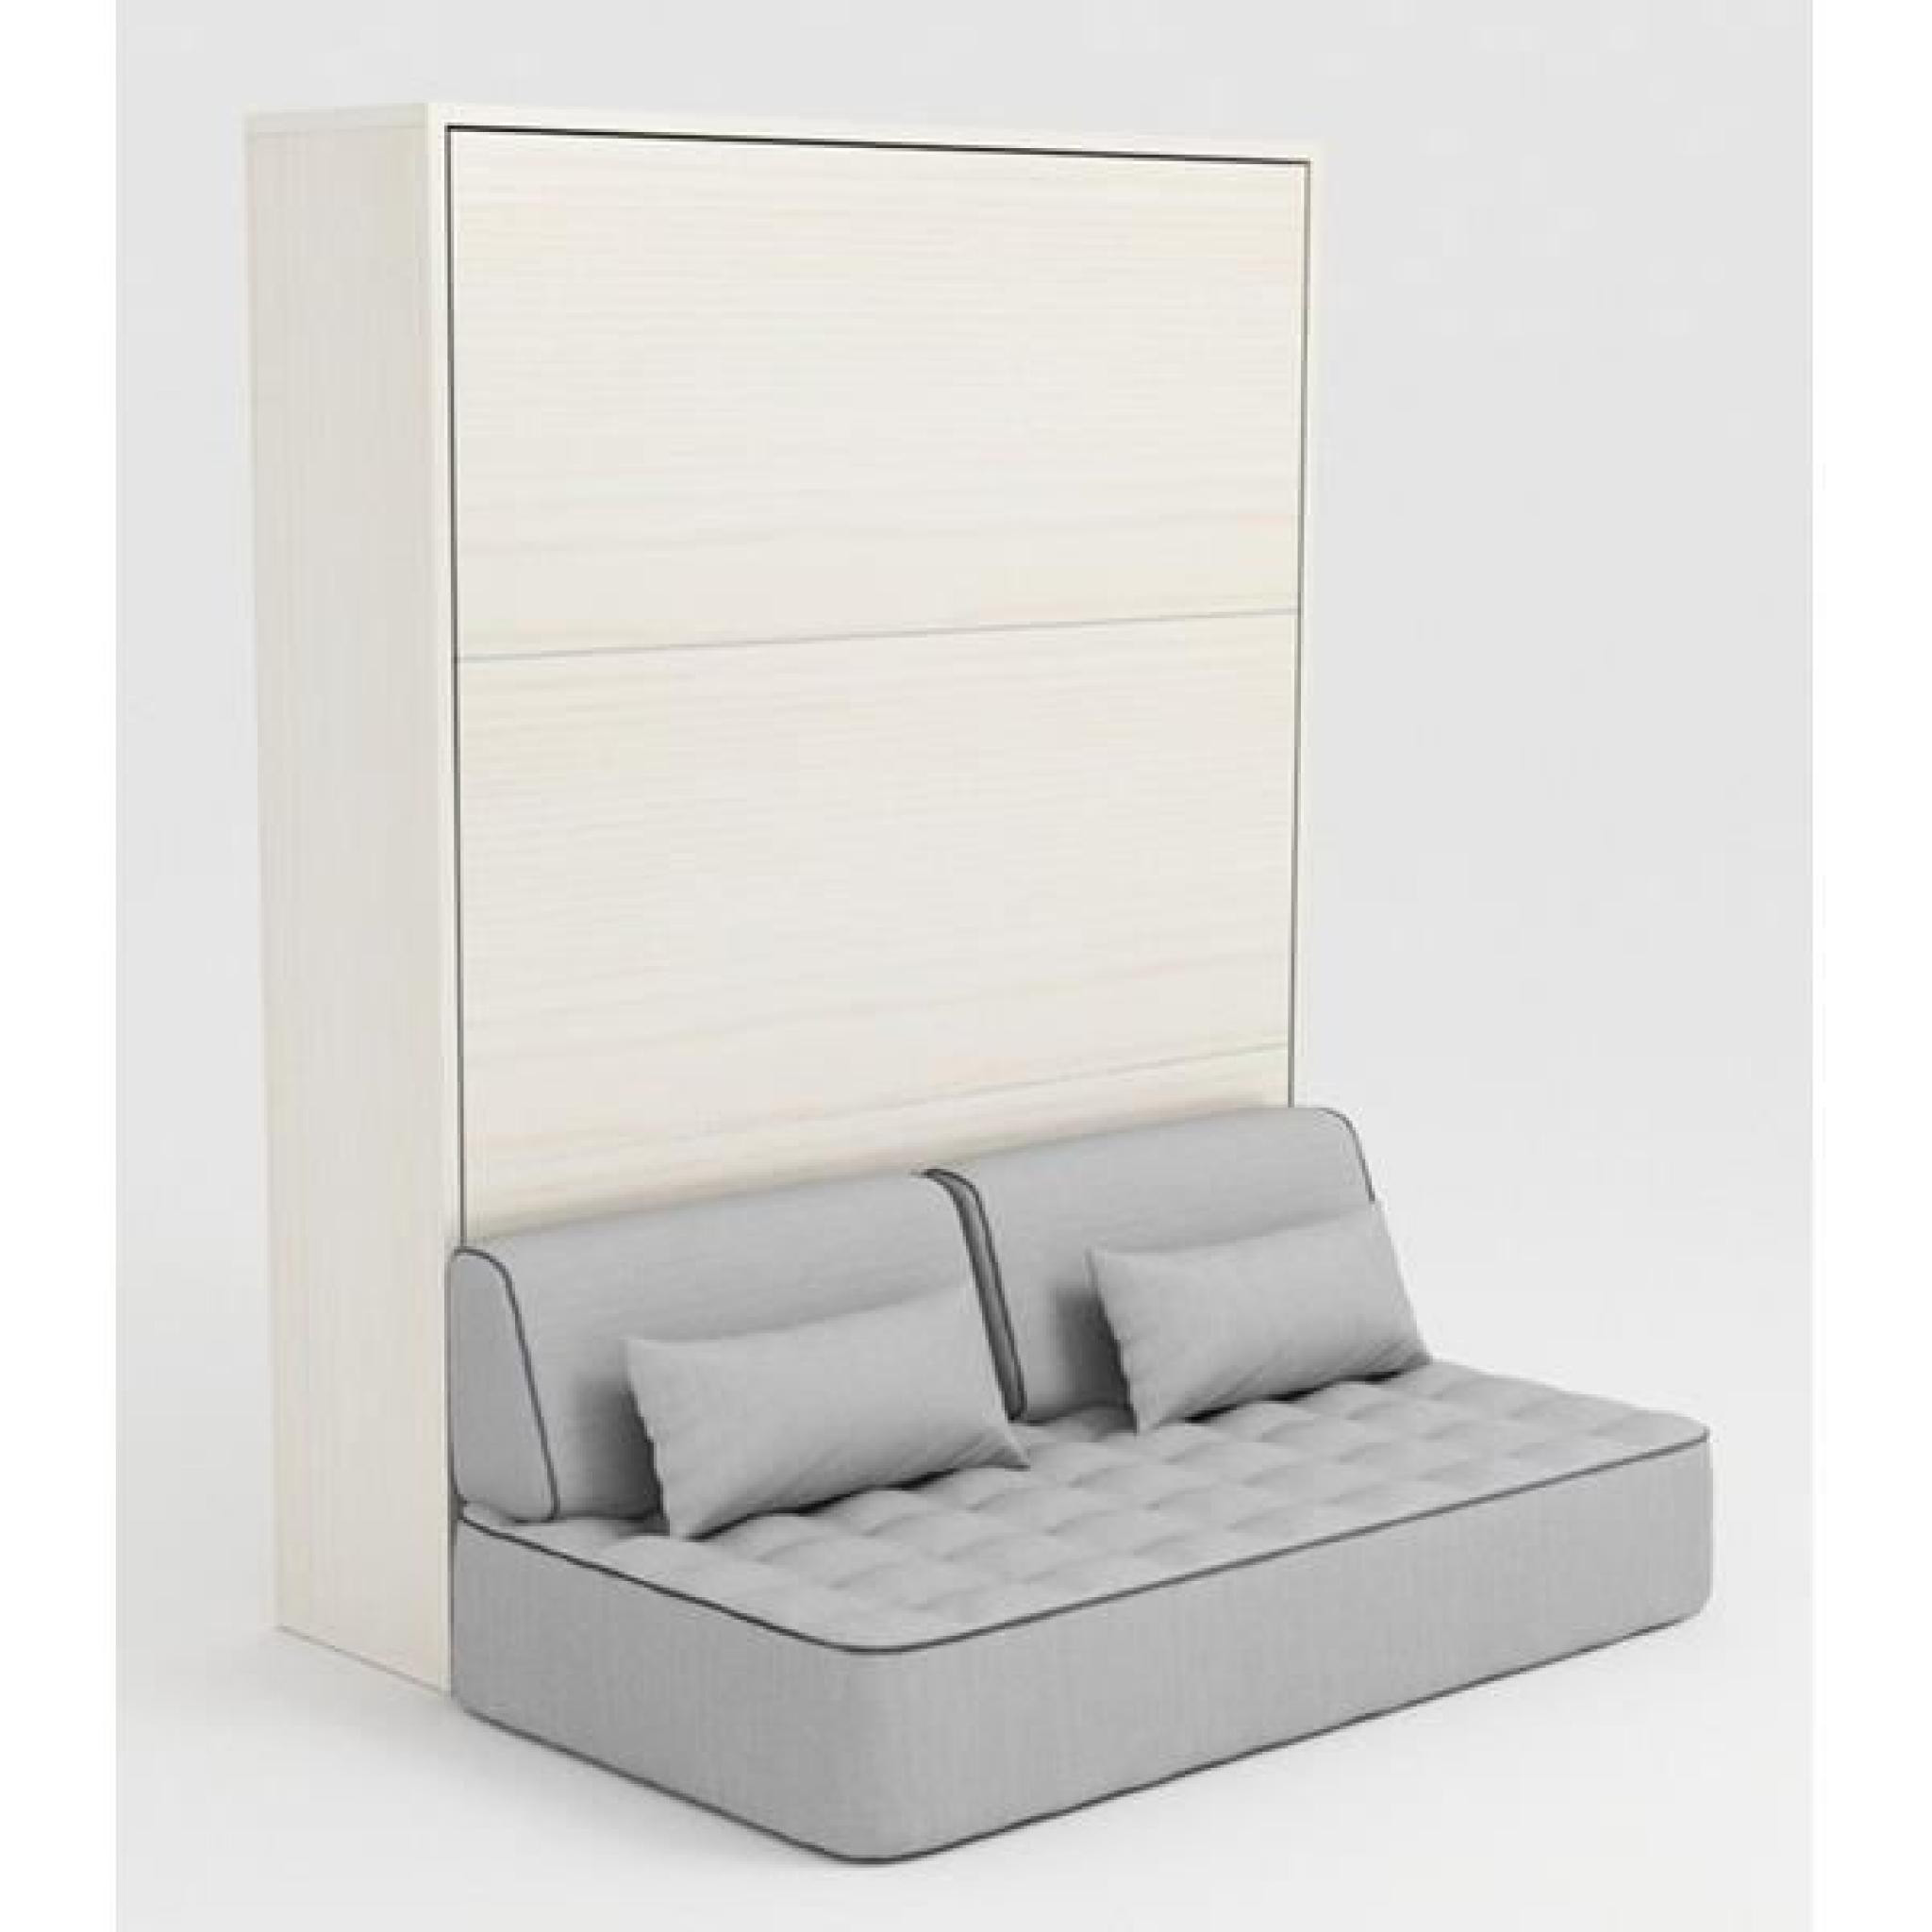 Canape 150 X 200 Arriba Armoire Lit Escamotable Stone 160×200 Blanc Canapé Achat Of 45  Perfecto Canape 150 X 200